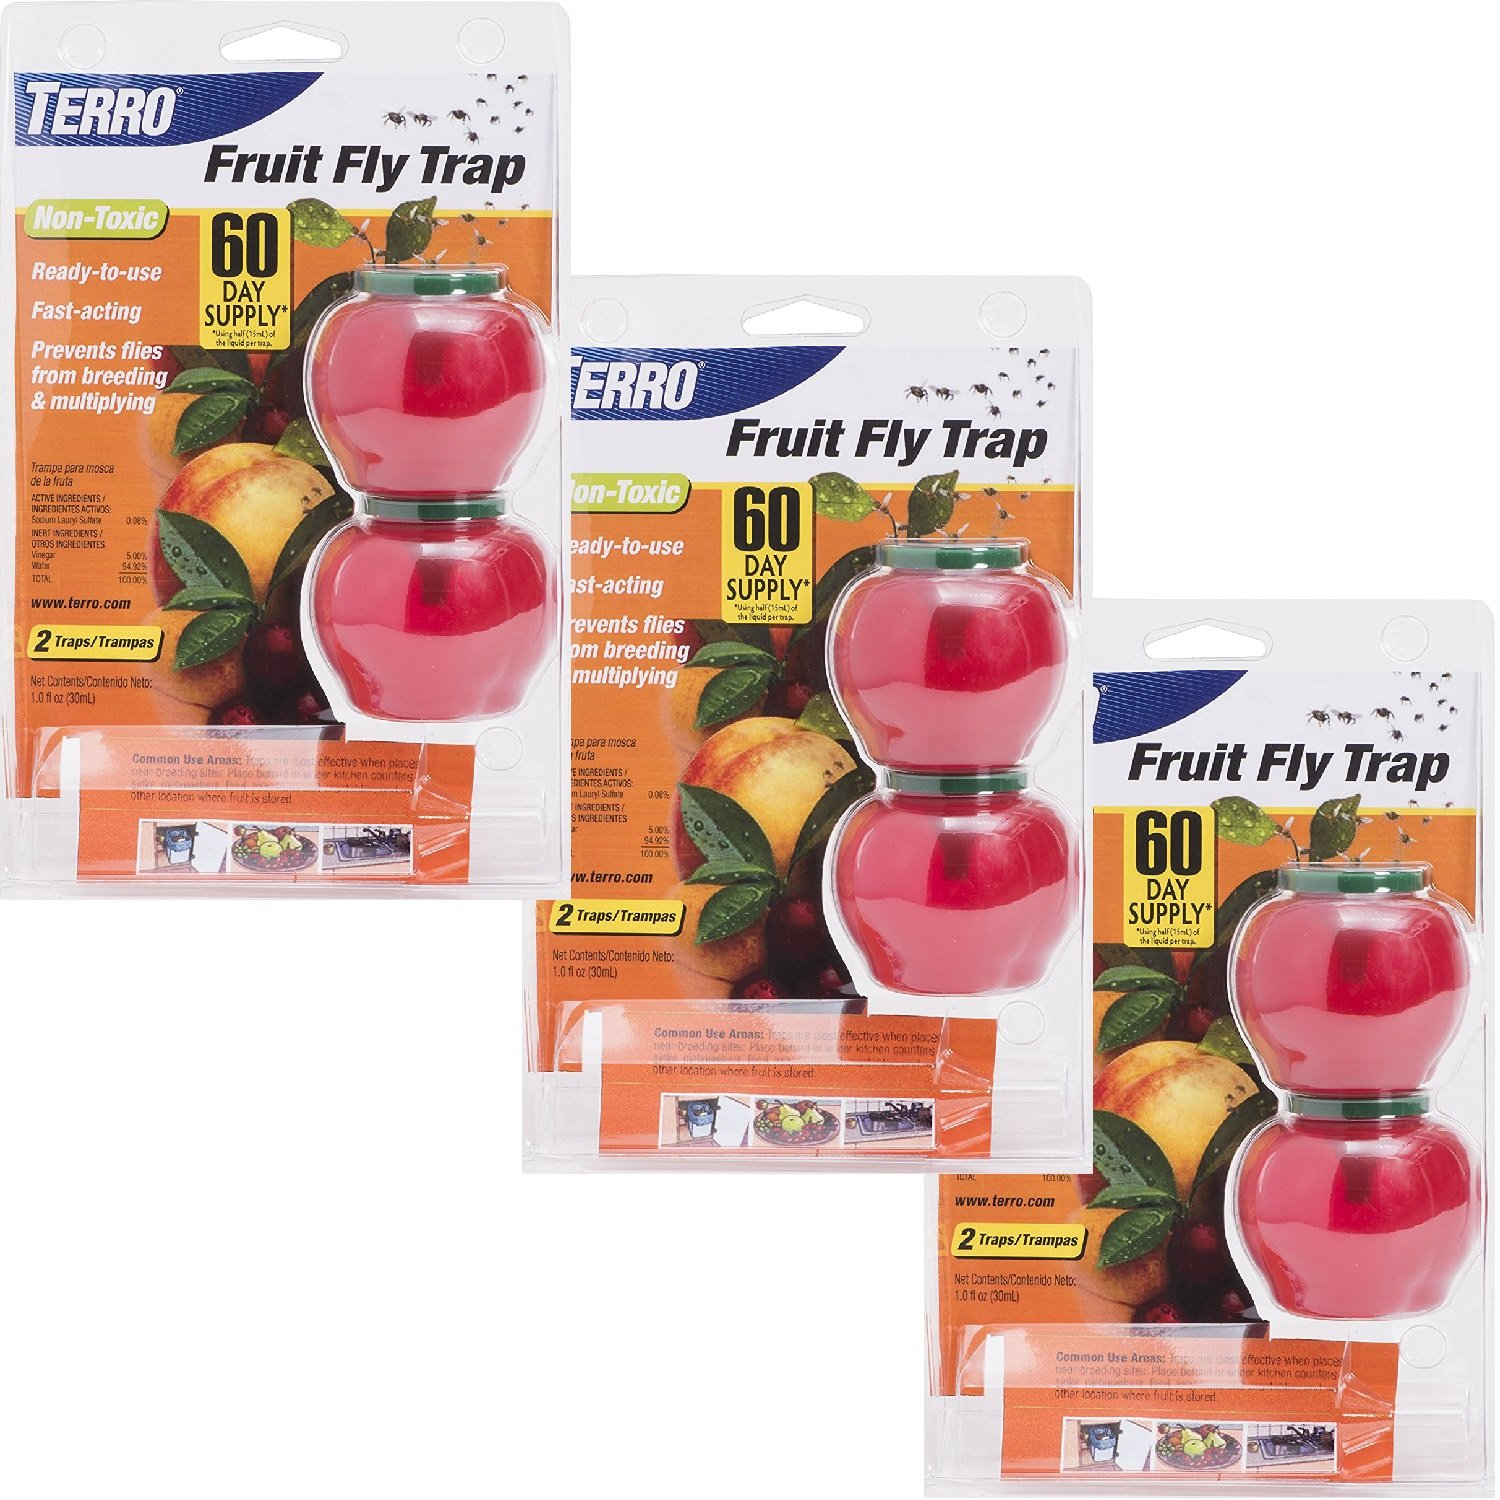 Woodstream TERRO Fruit Fly Trap – 6 Pack T2502